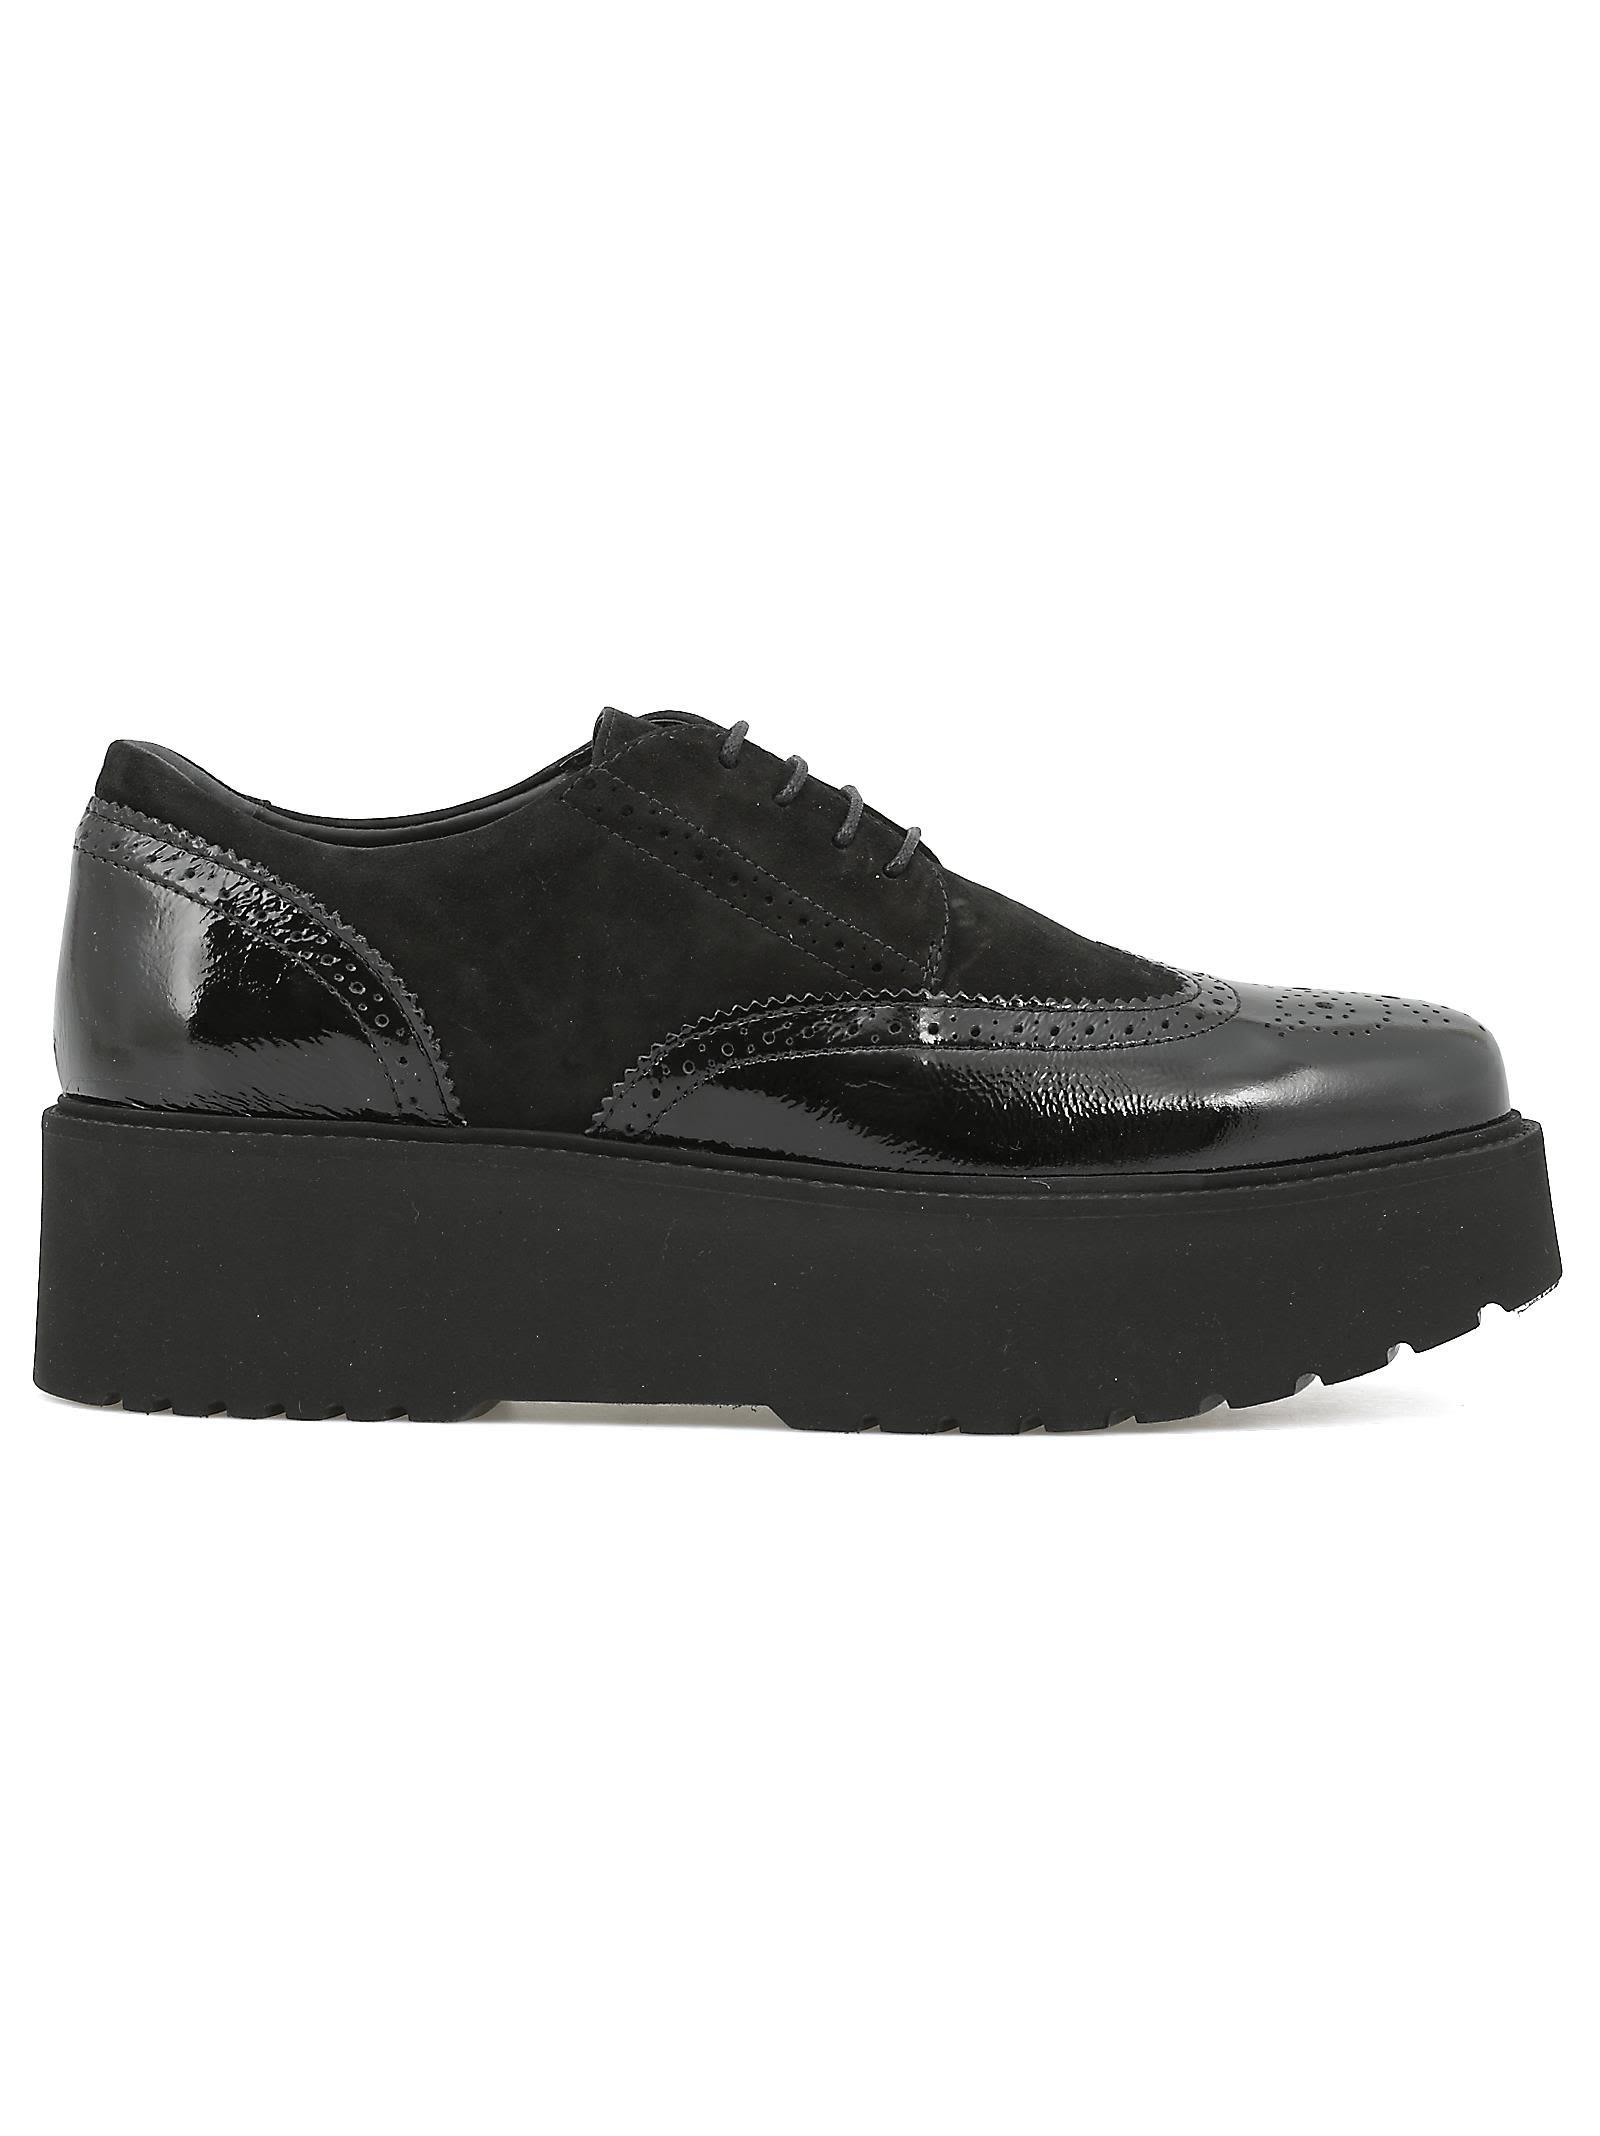 Hogan Leather Lace-up Shoe In Black